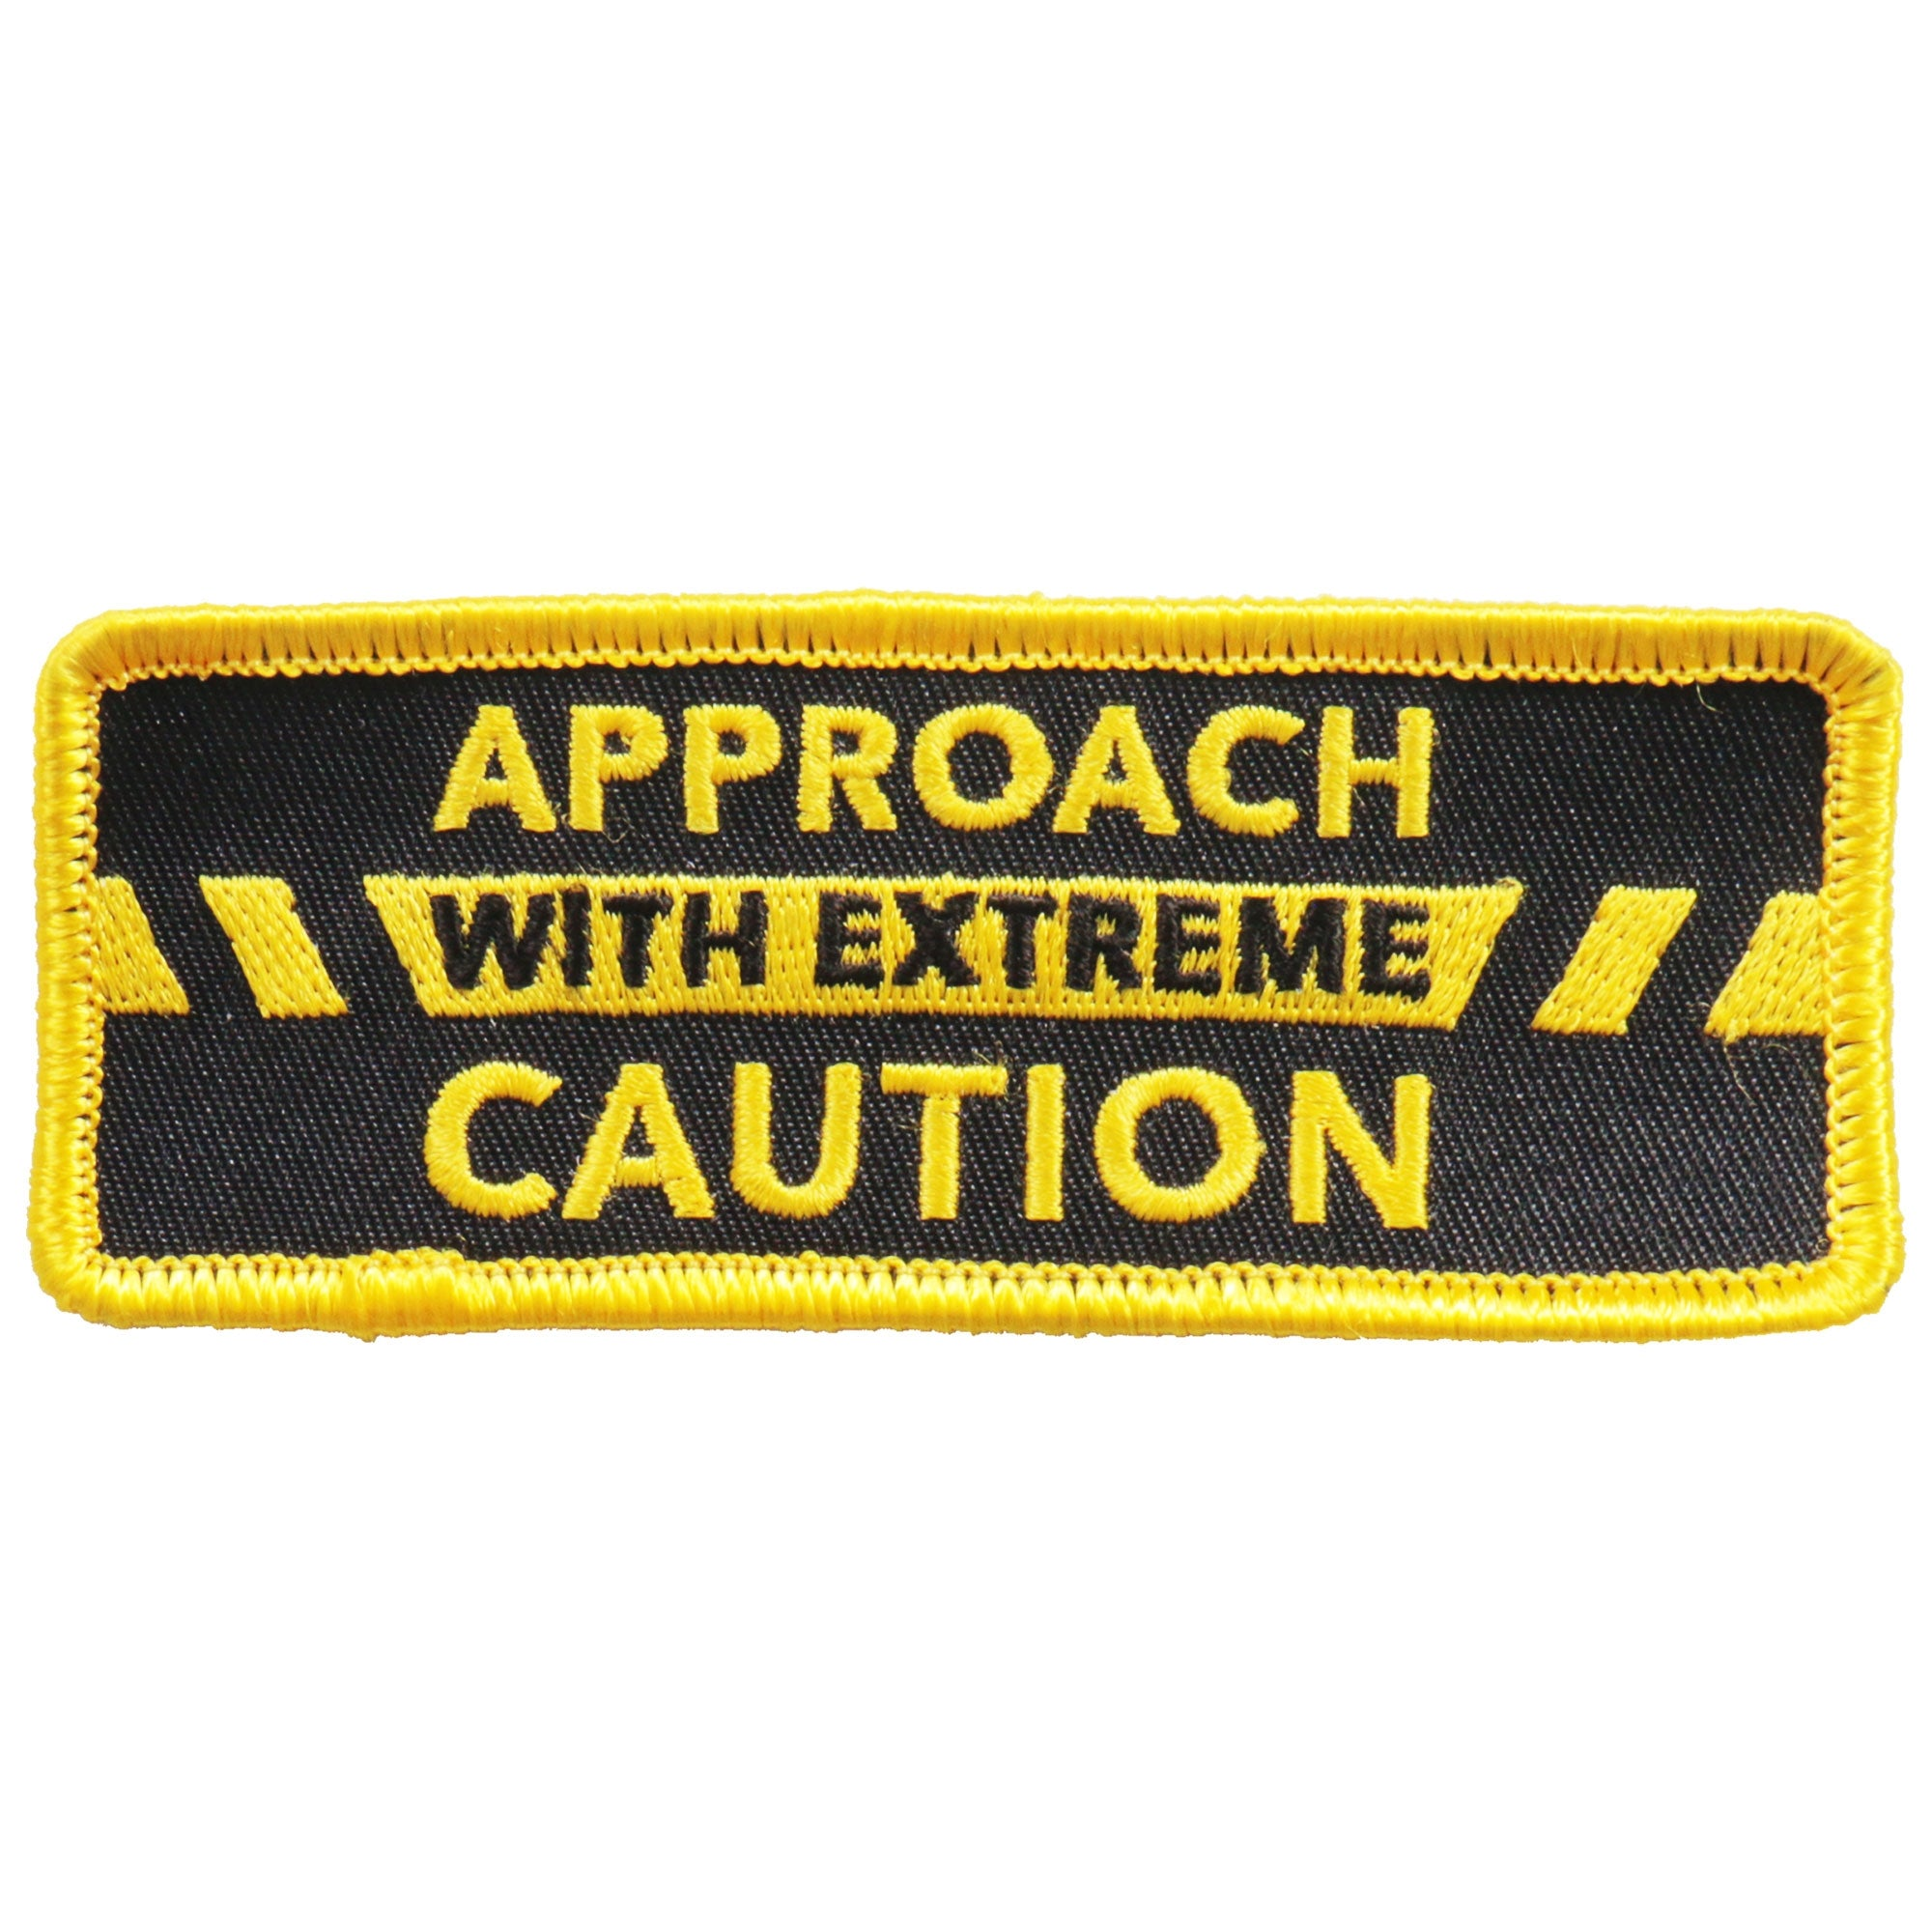 Hot Leathers Patch Approach W/ Extreme Caution